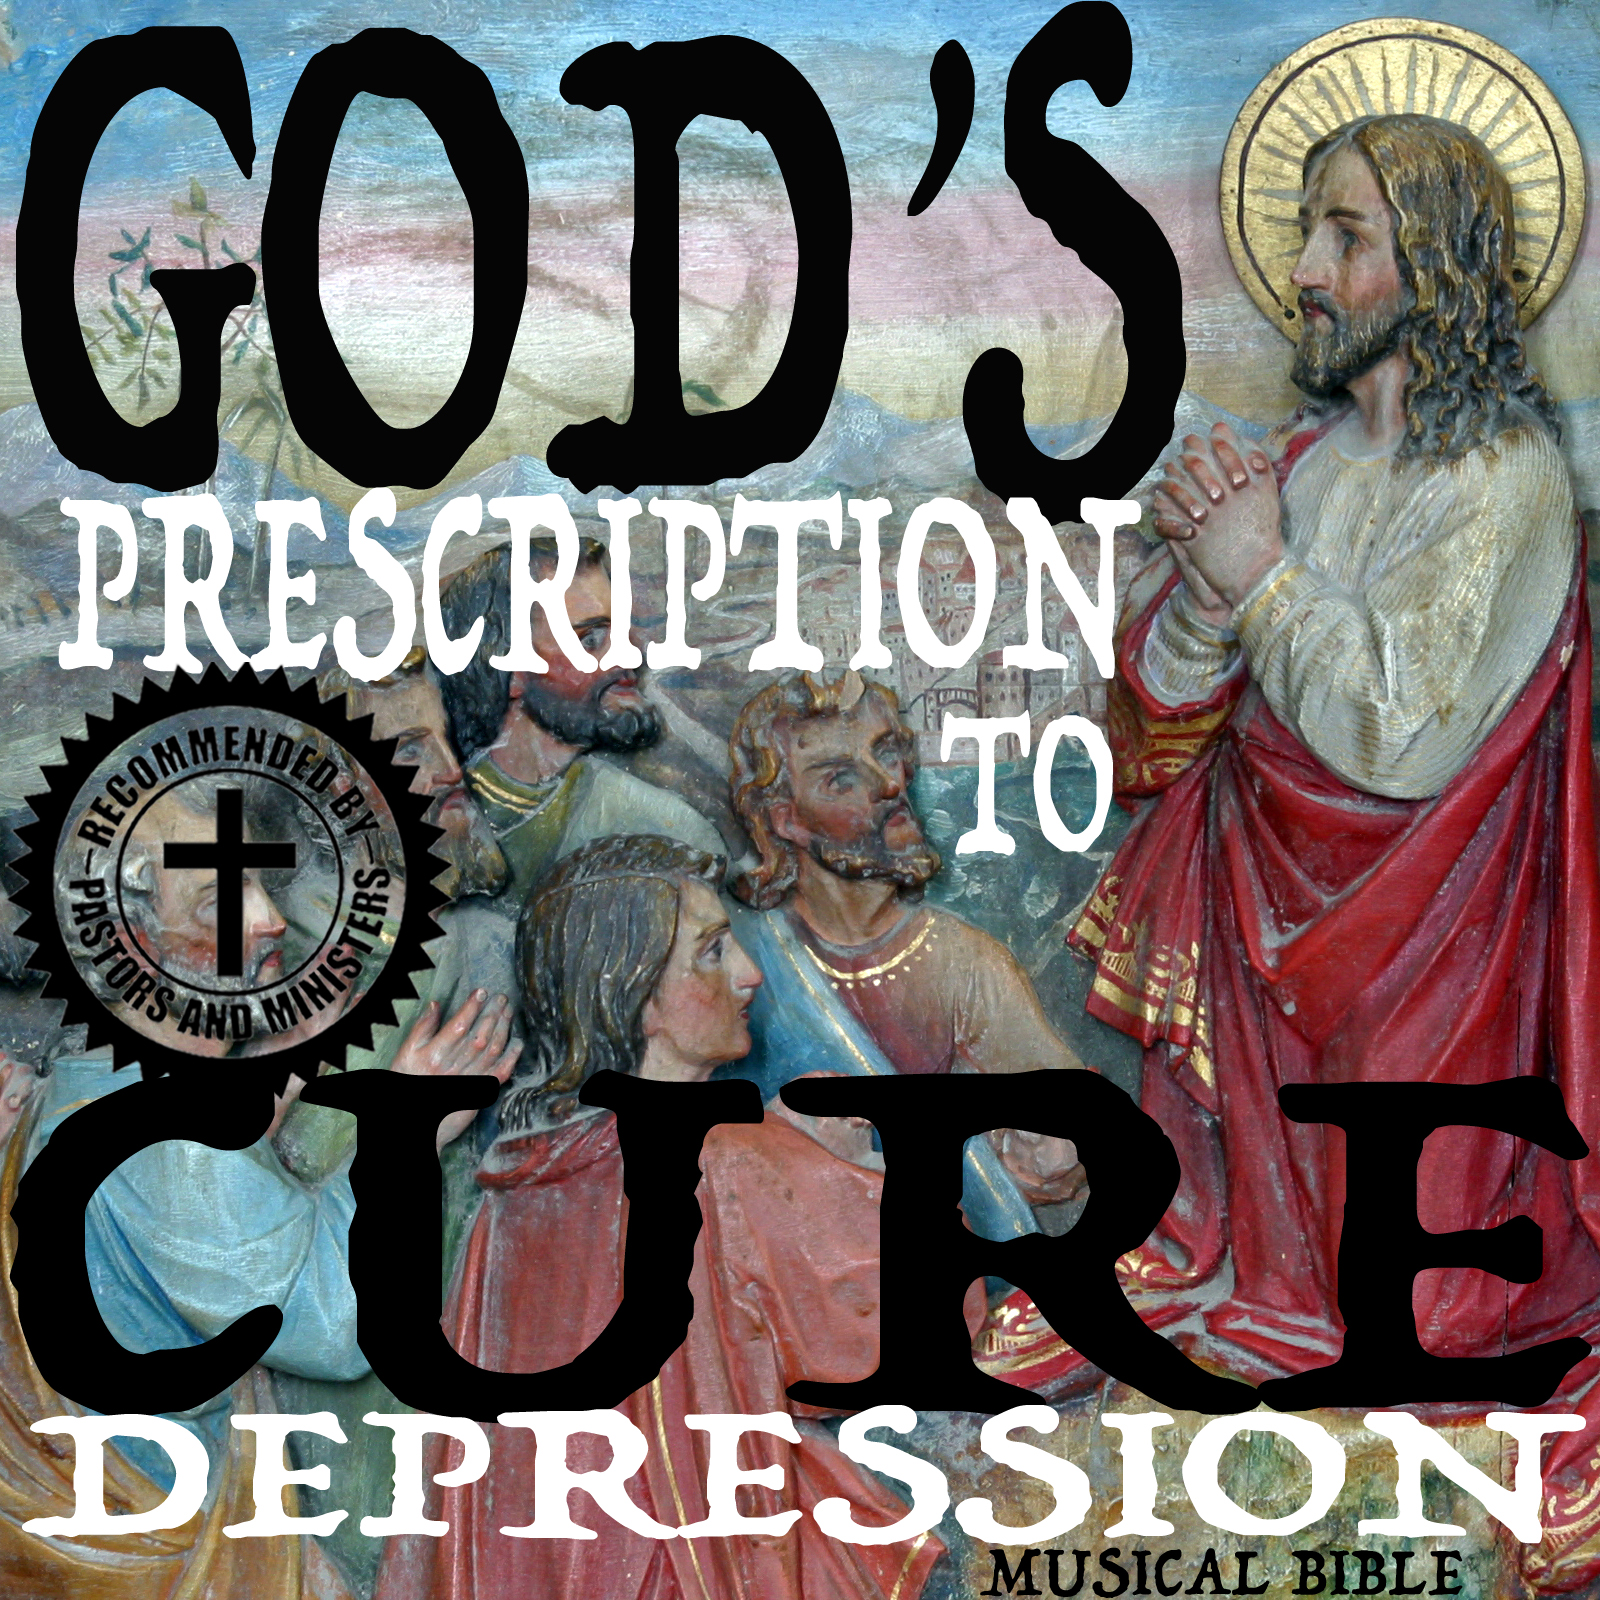 God's Prescription to Cure Depression Musical Bible